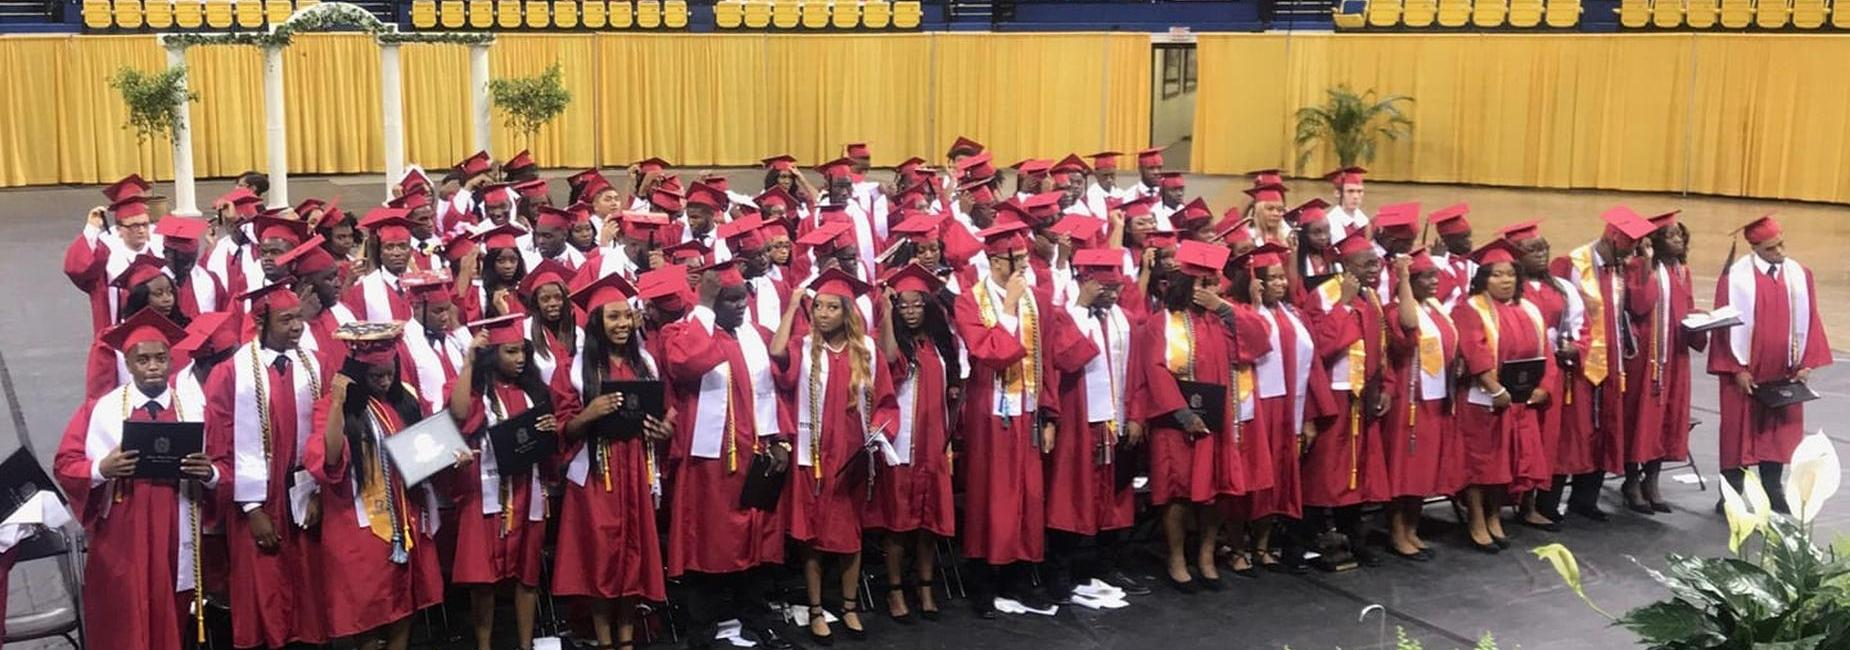 A group photo of the Baker High School Class of 2019 @ Southern University Graduation Ceremony